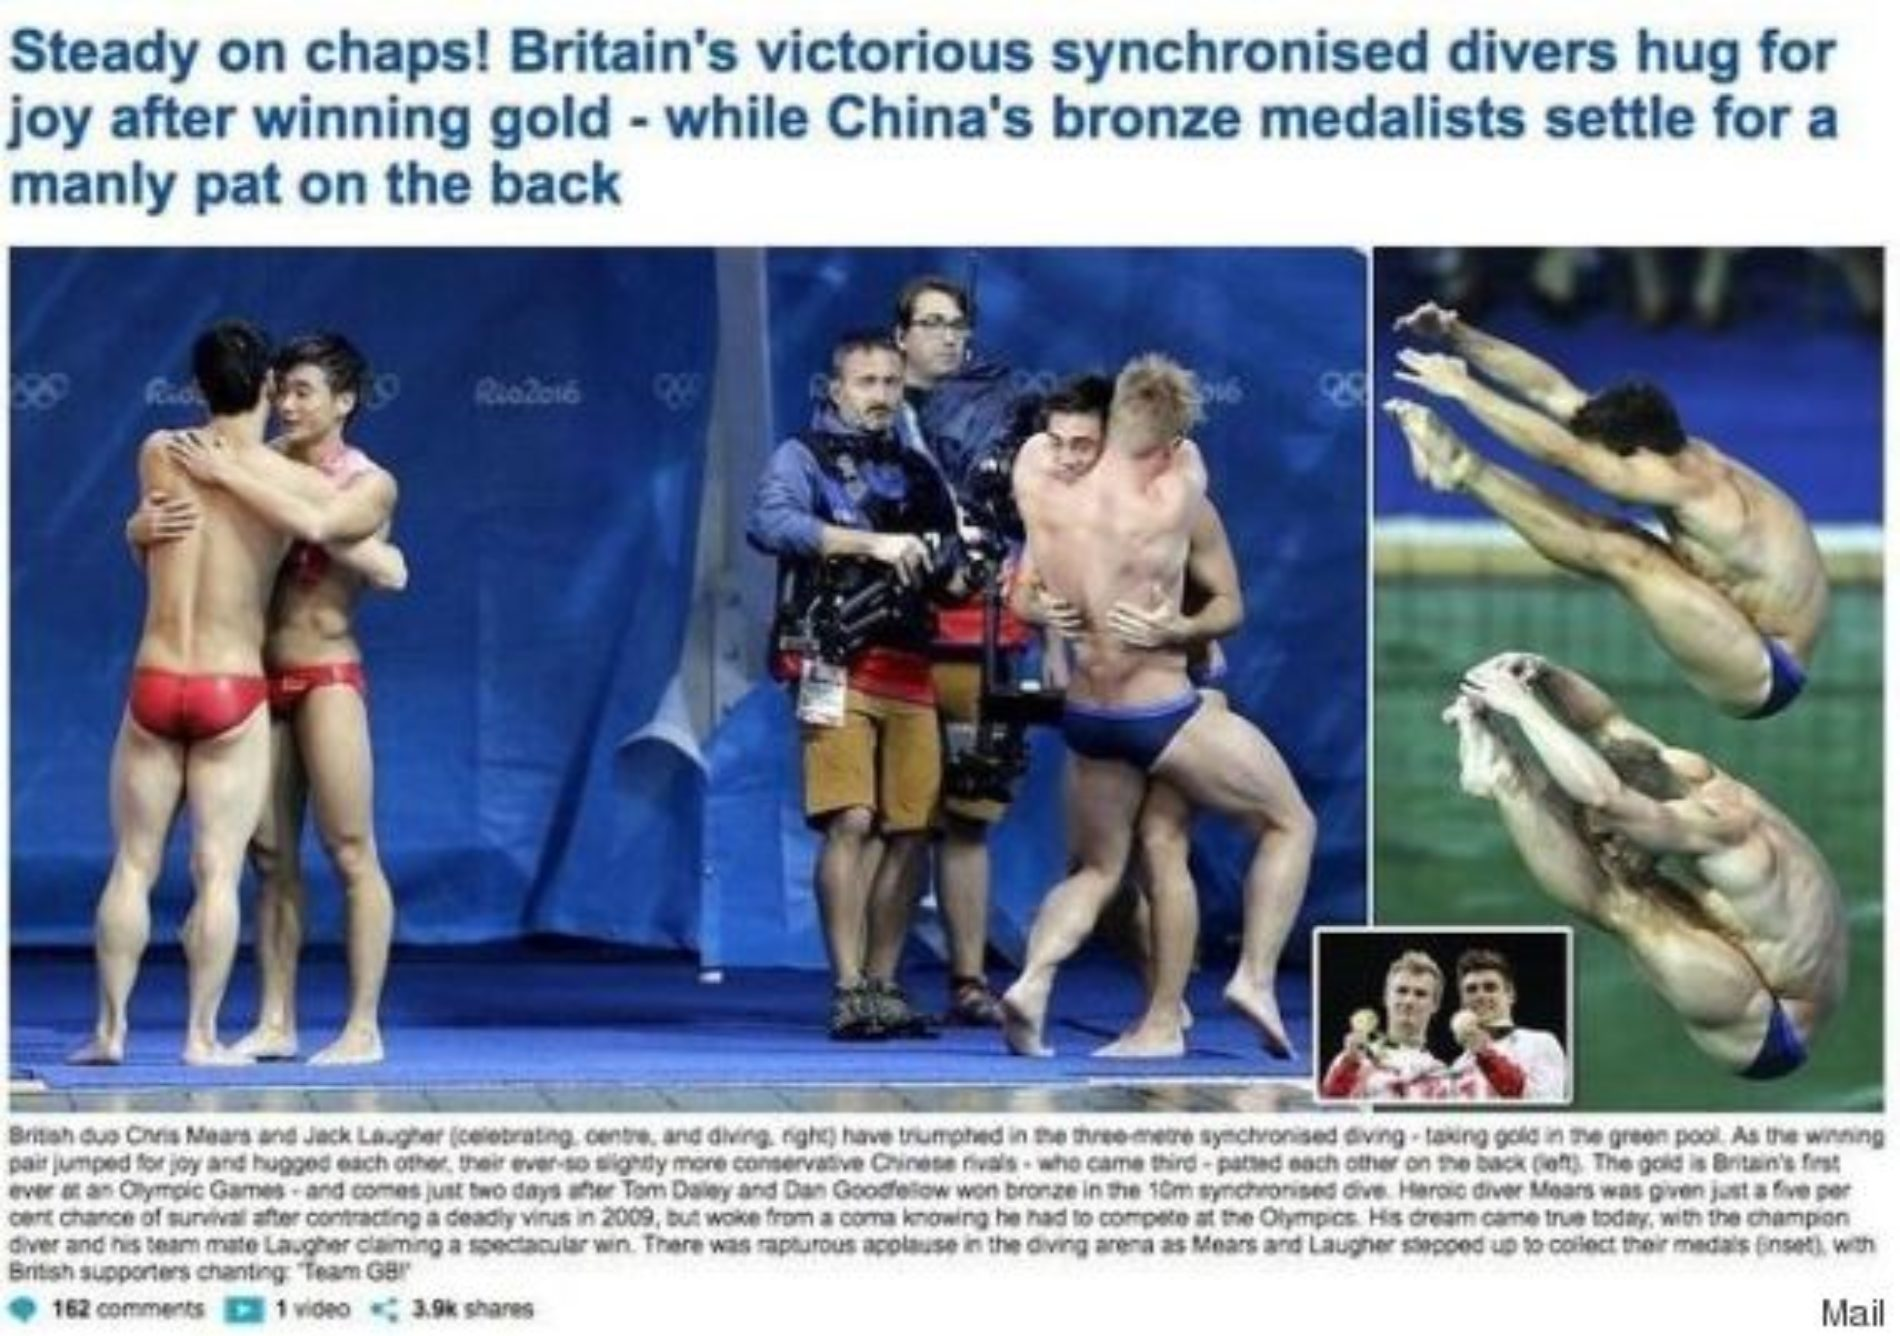 Daily Mail Claims Two Male Olympians Hugging Is Unmanly and the Internet Reacts